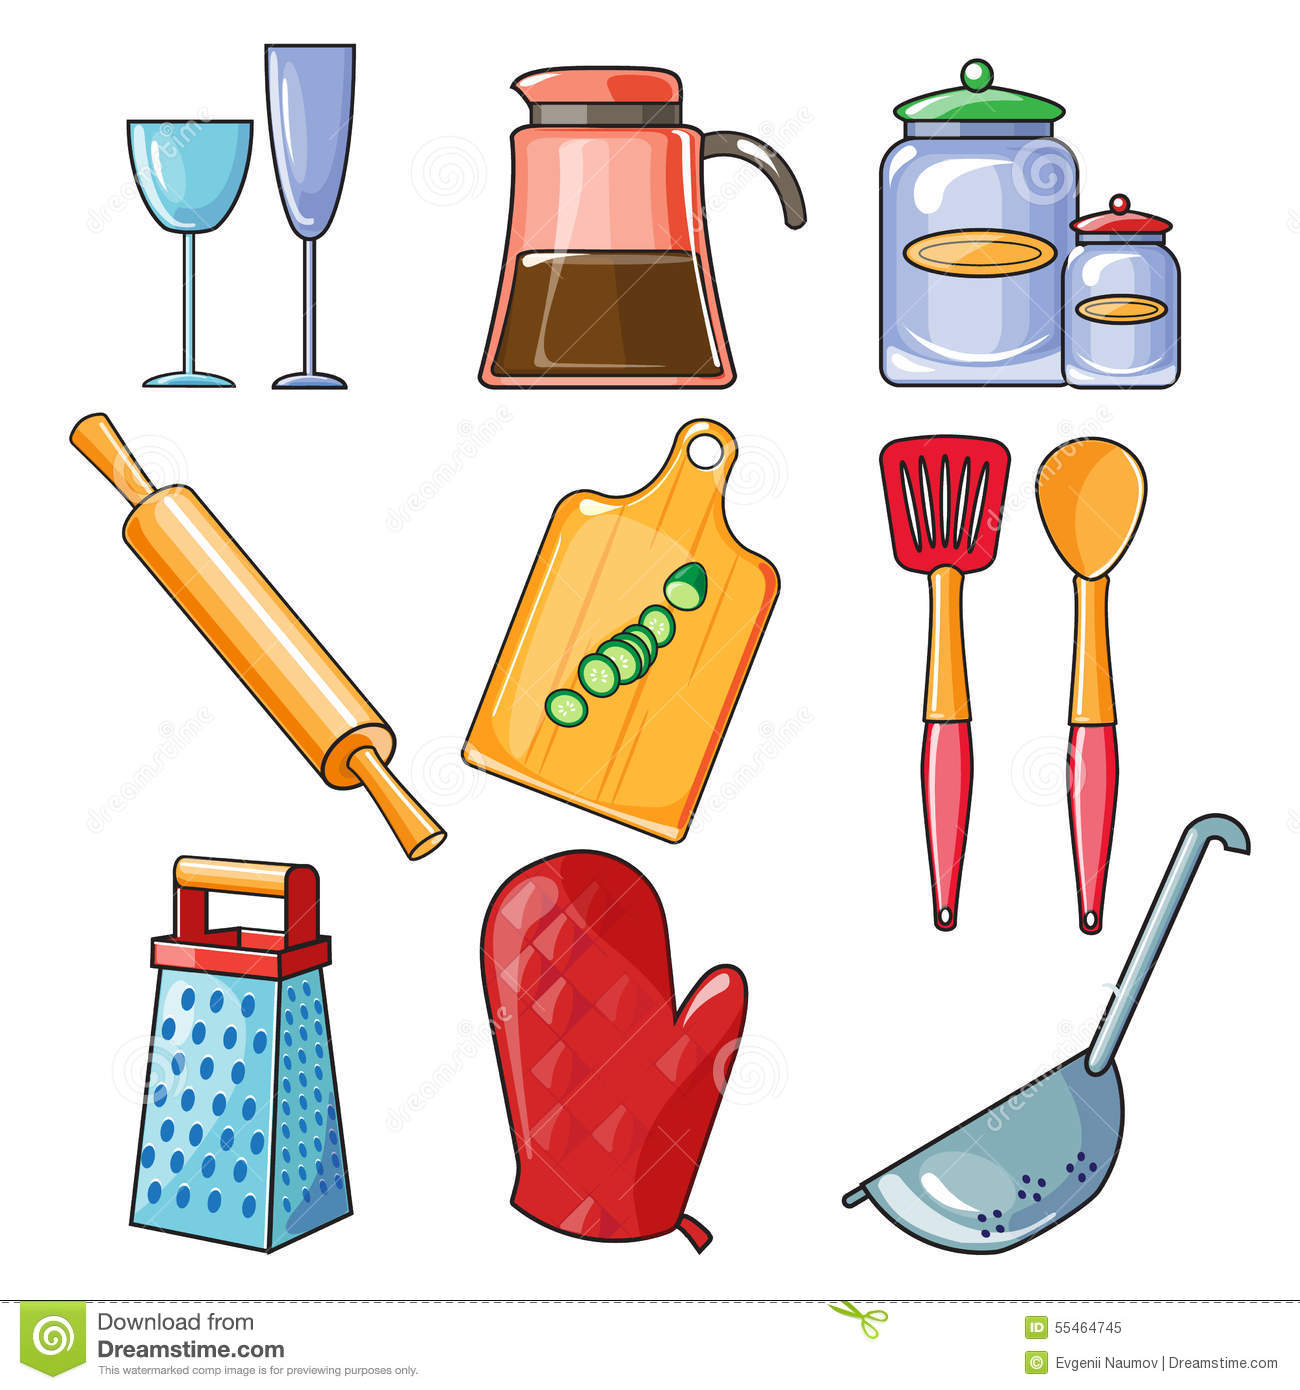 Kitchen Equipment Clip Art ~ Cooking tools and kitchenware equipment stock vector